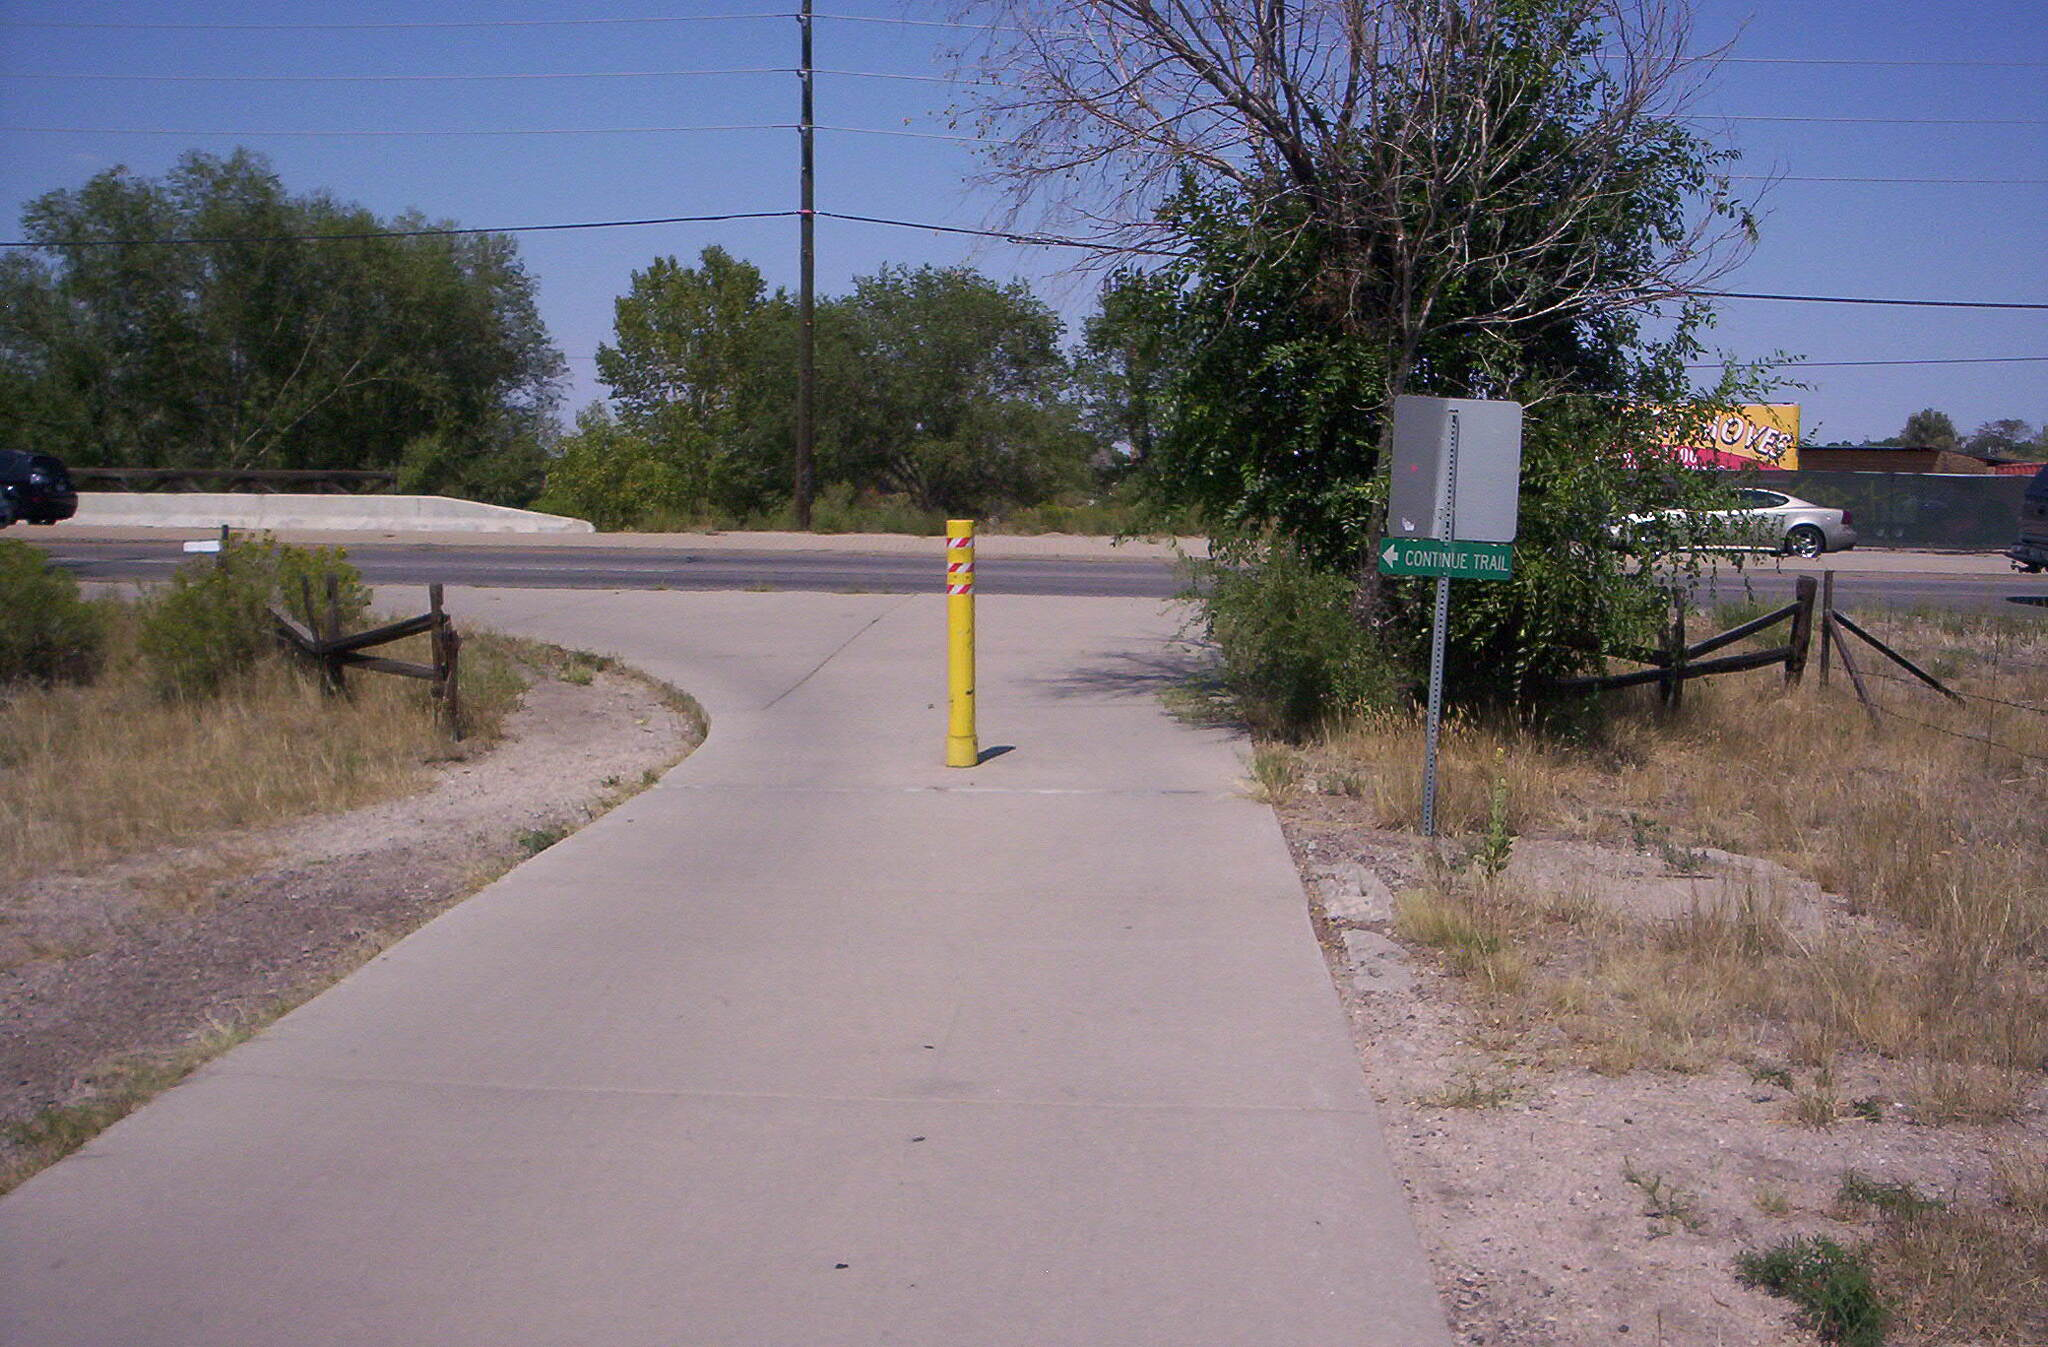 Cherry Creek Regional Trail Jog Trail continues on other side of creek at Iliff Ave